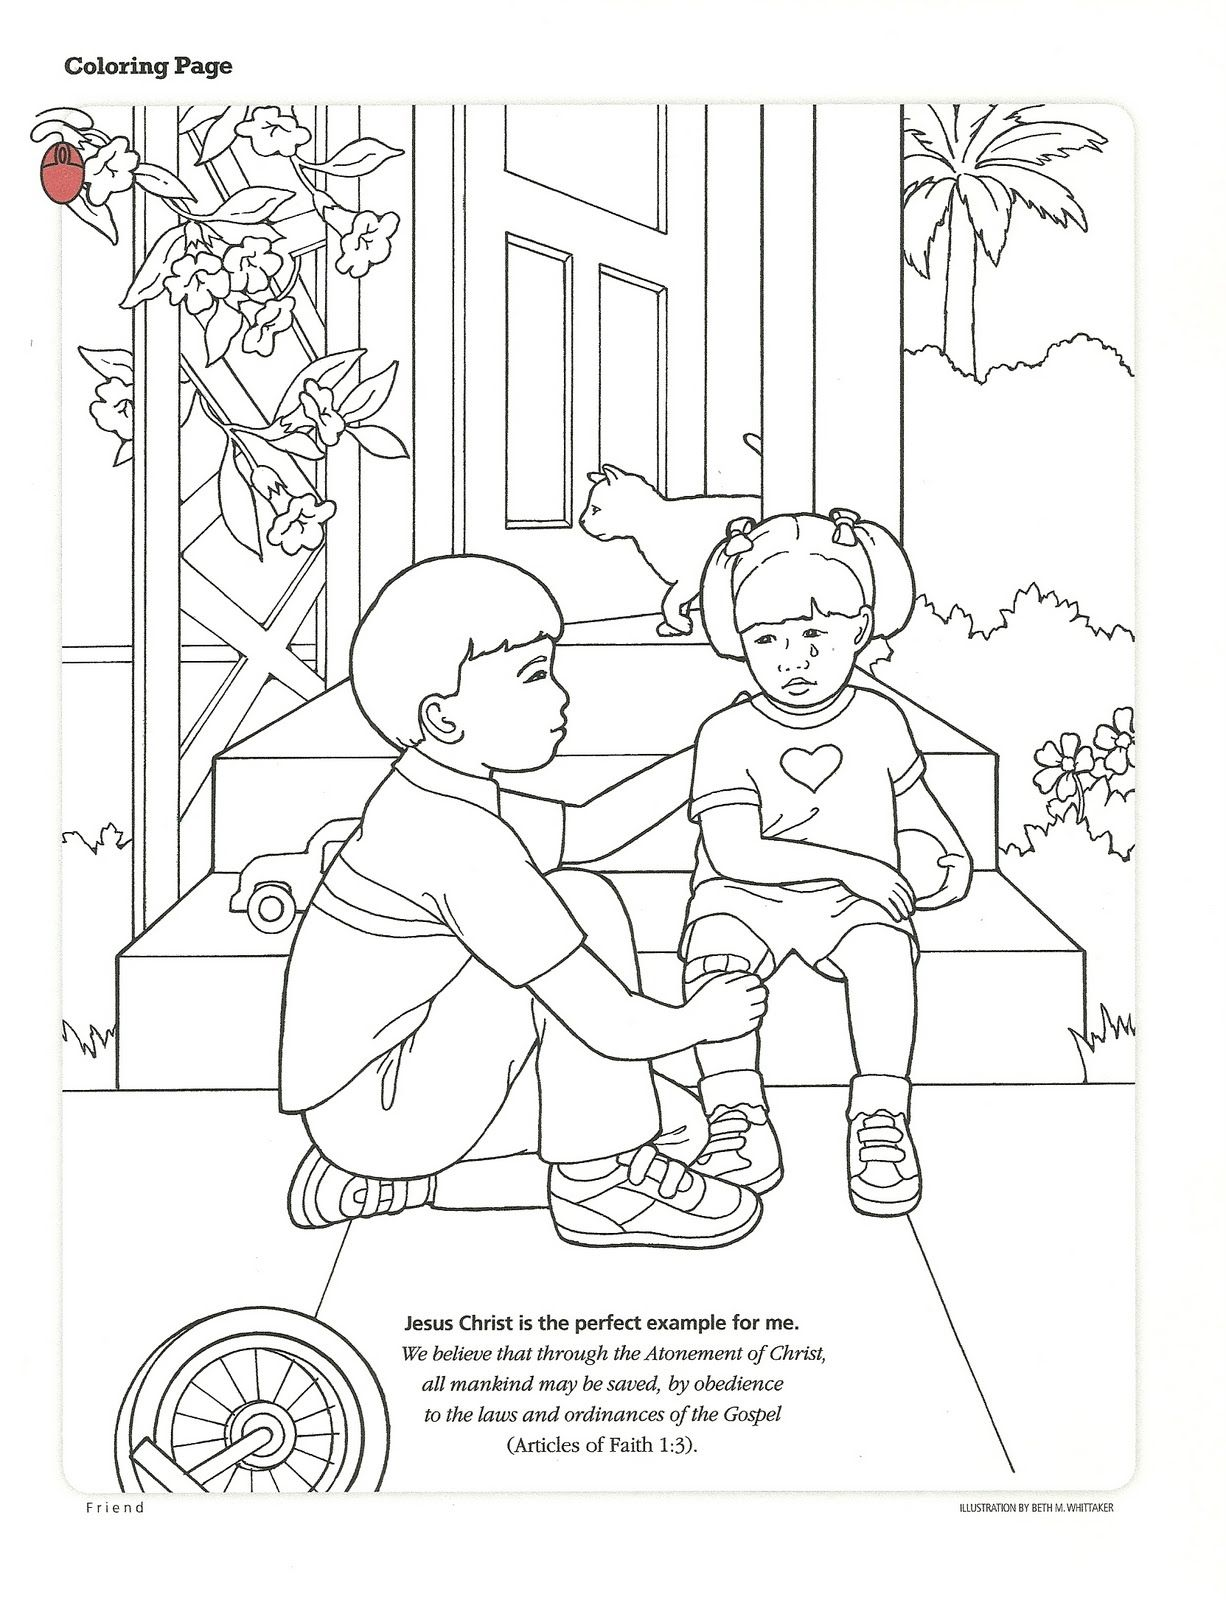 1226x1600 Lds Primary Coloring Pages Activity From The Friend, September